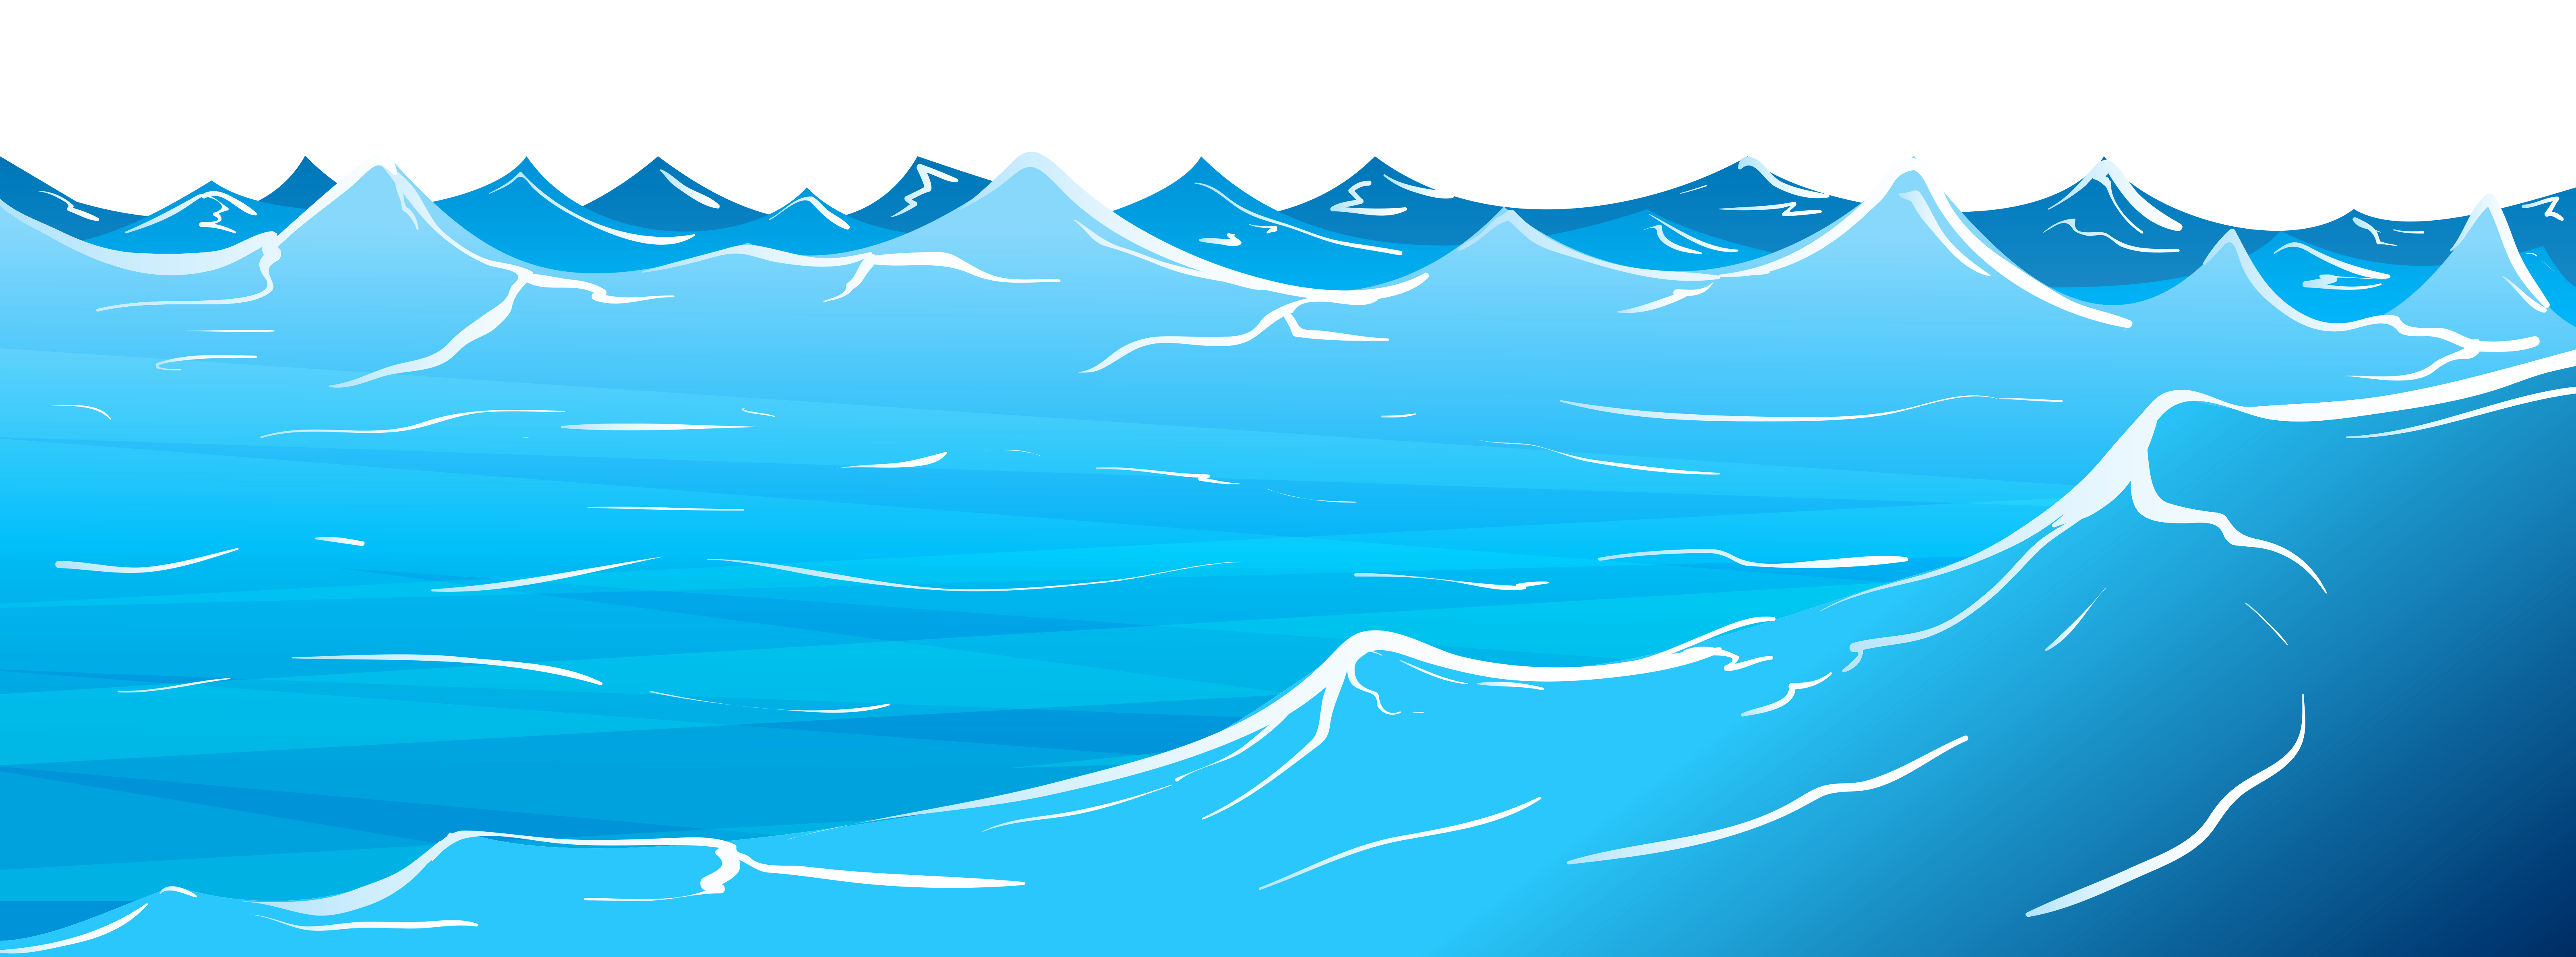 Waves clipart waterline.  collection of ocean